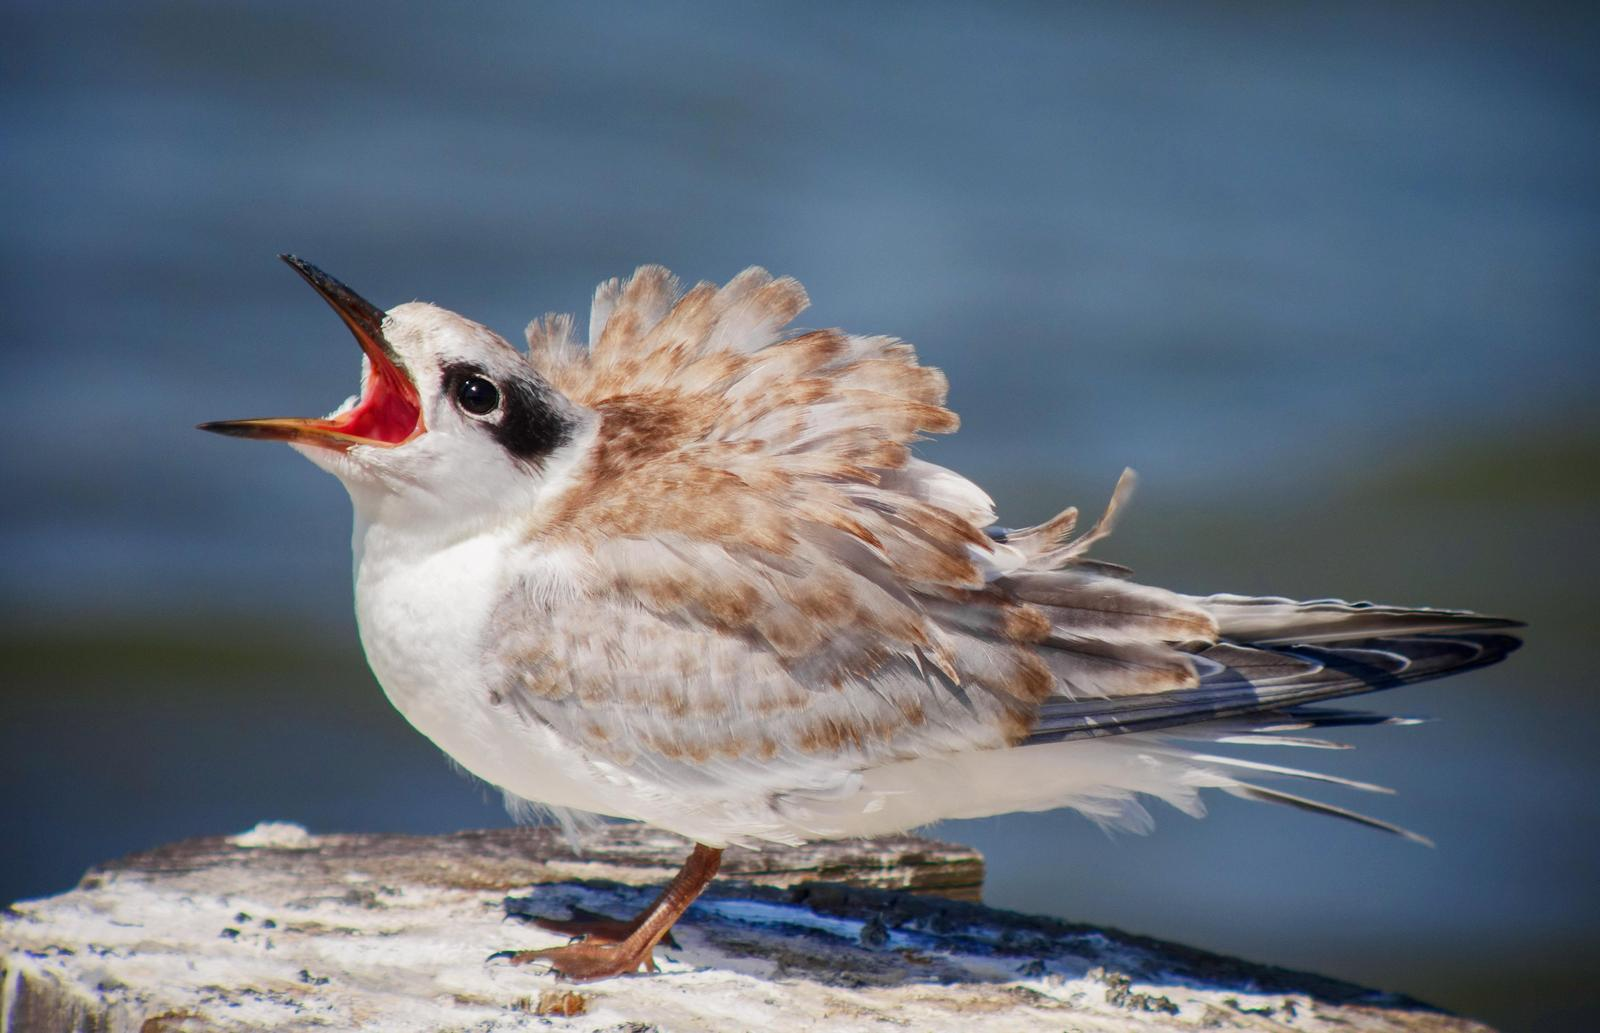 Forster's Tern Photo by Joseph Pescatore